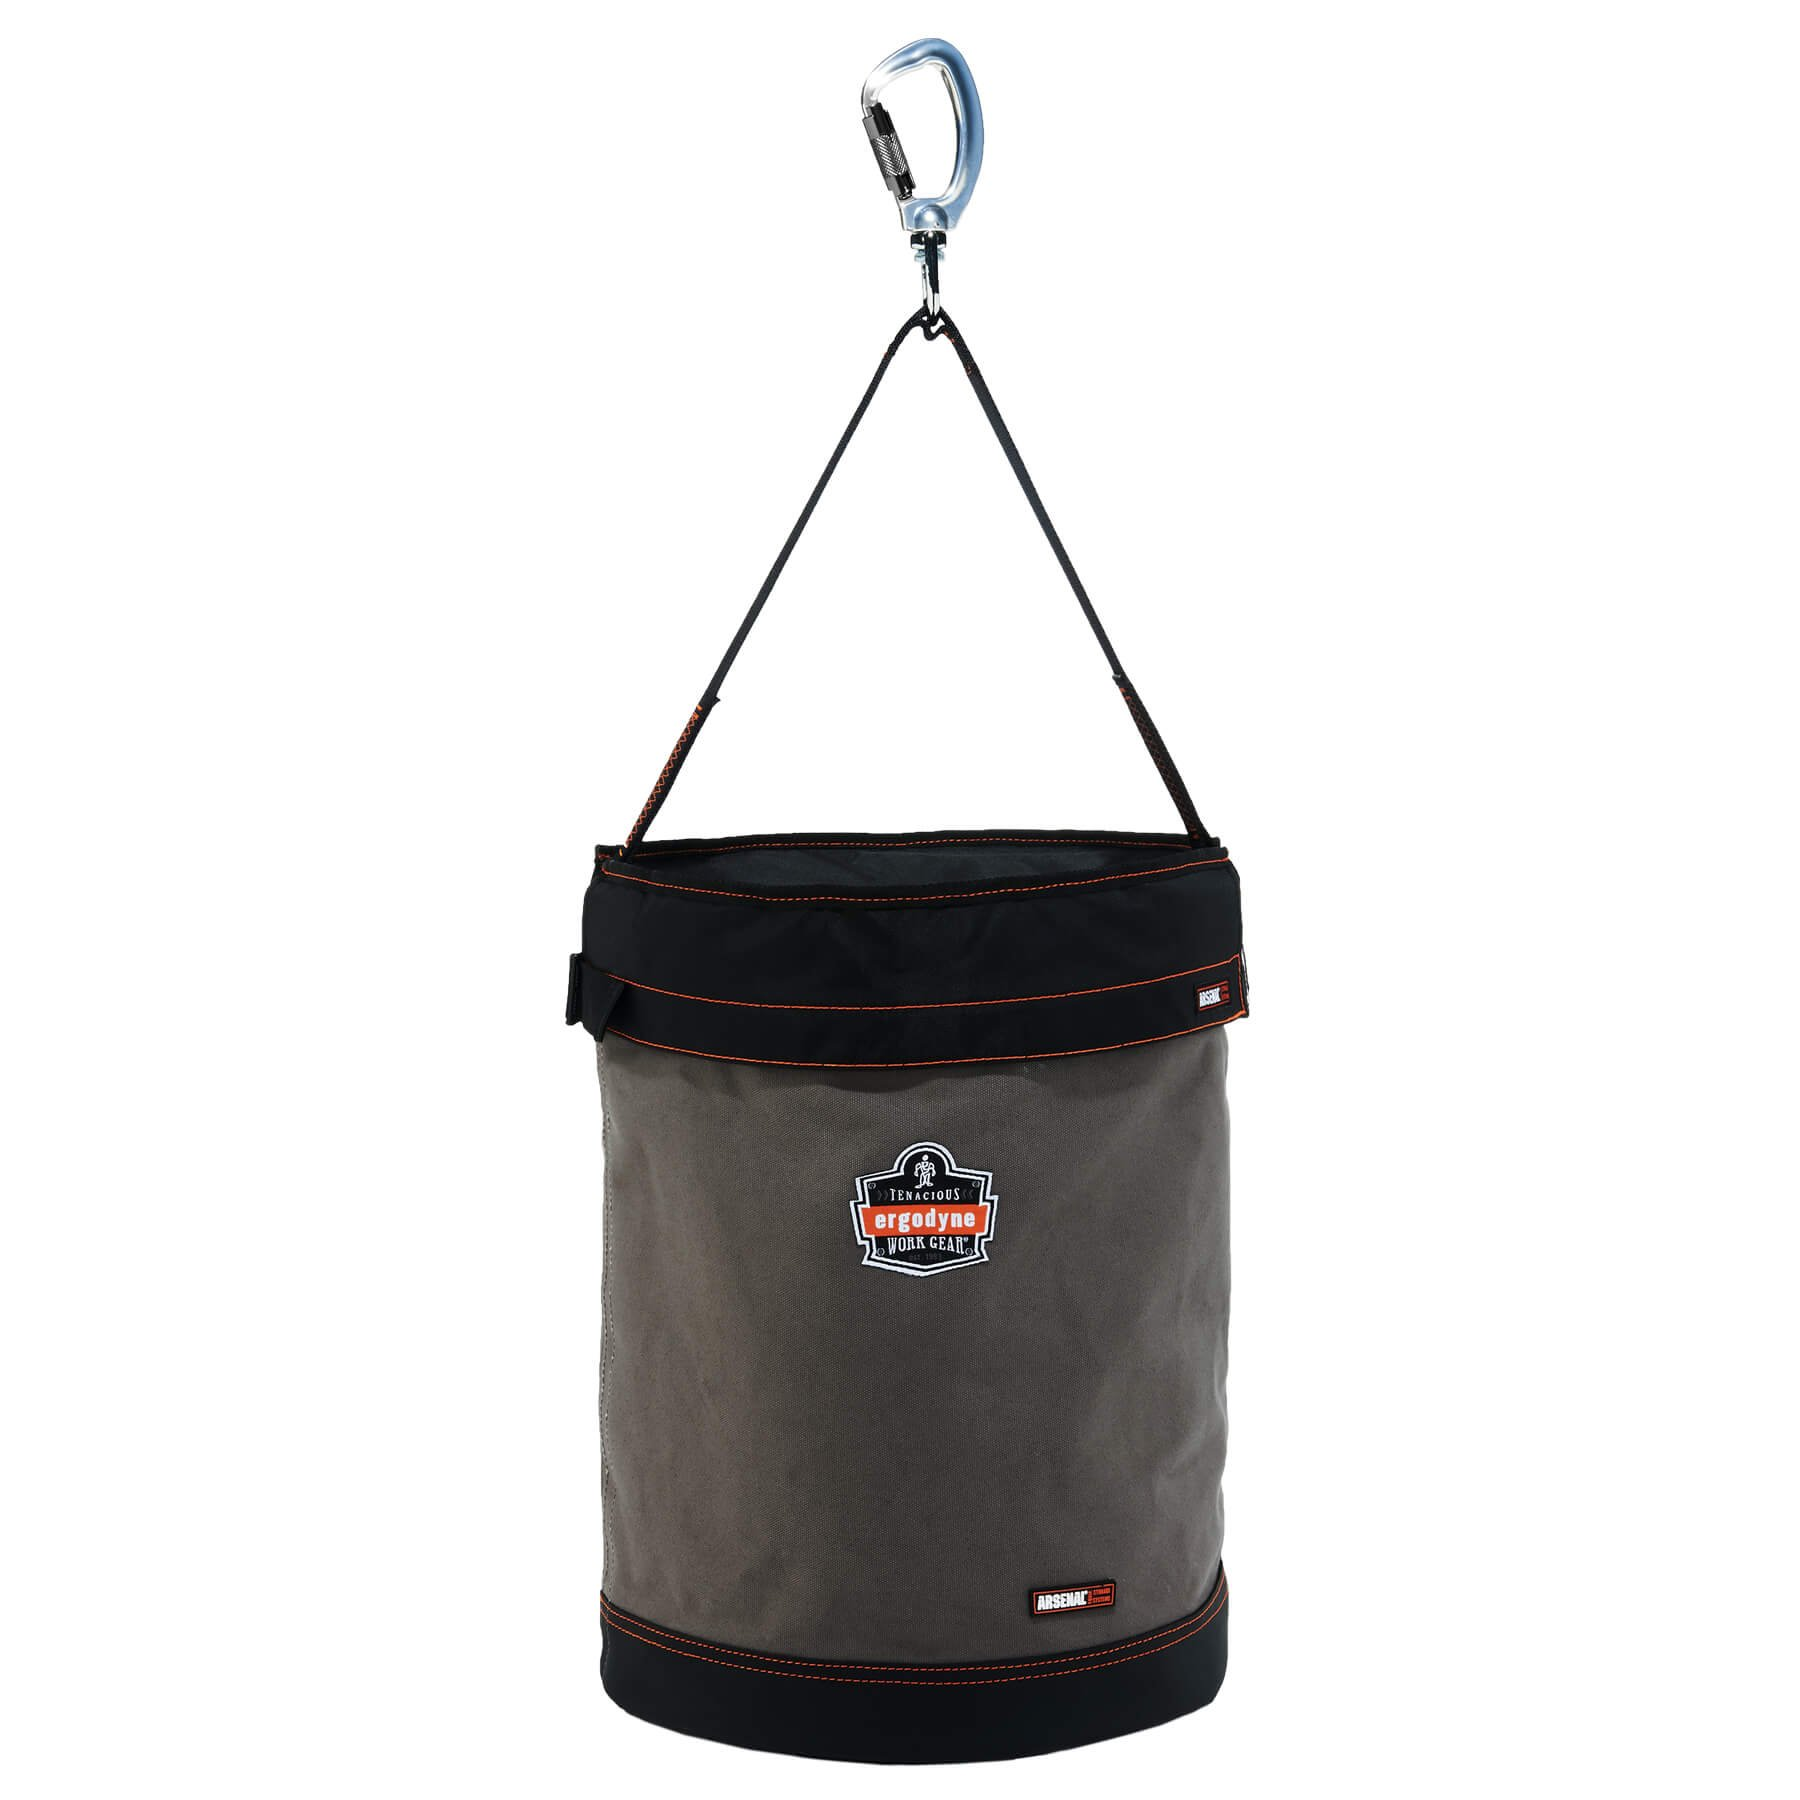 Ergodyne Arsenal 5945T X-Large Canvas Tool Bucket with Cover, Gray